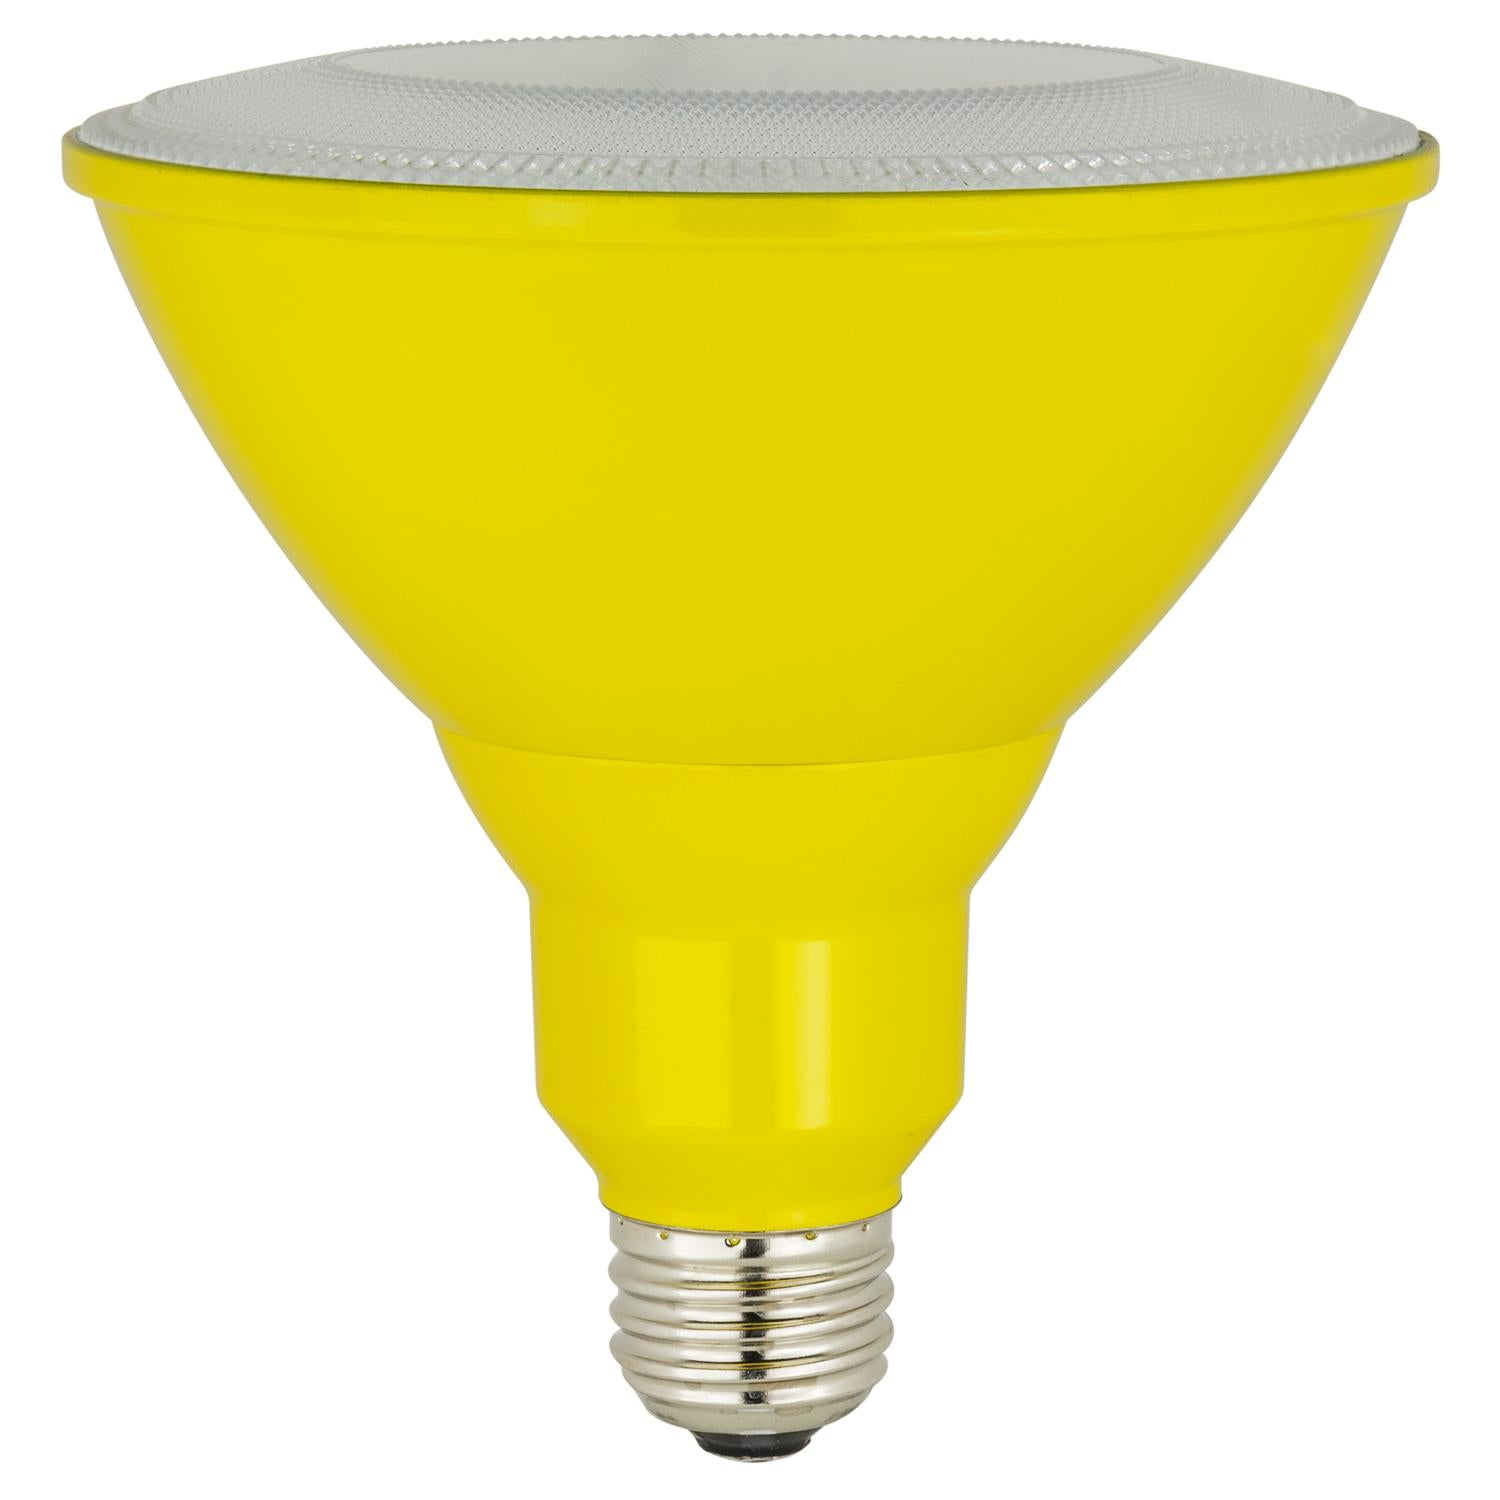 Sunlite 80558-SU LED Yellow PAR38 Colored Reflector 8w Light Bulb